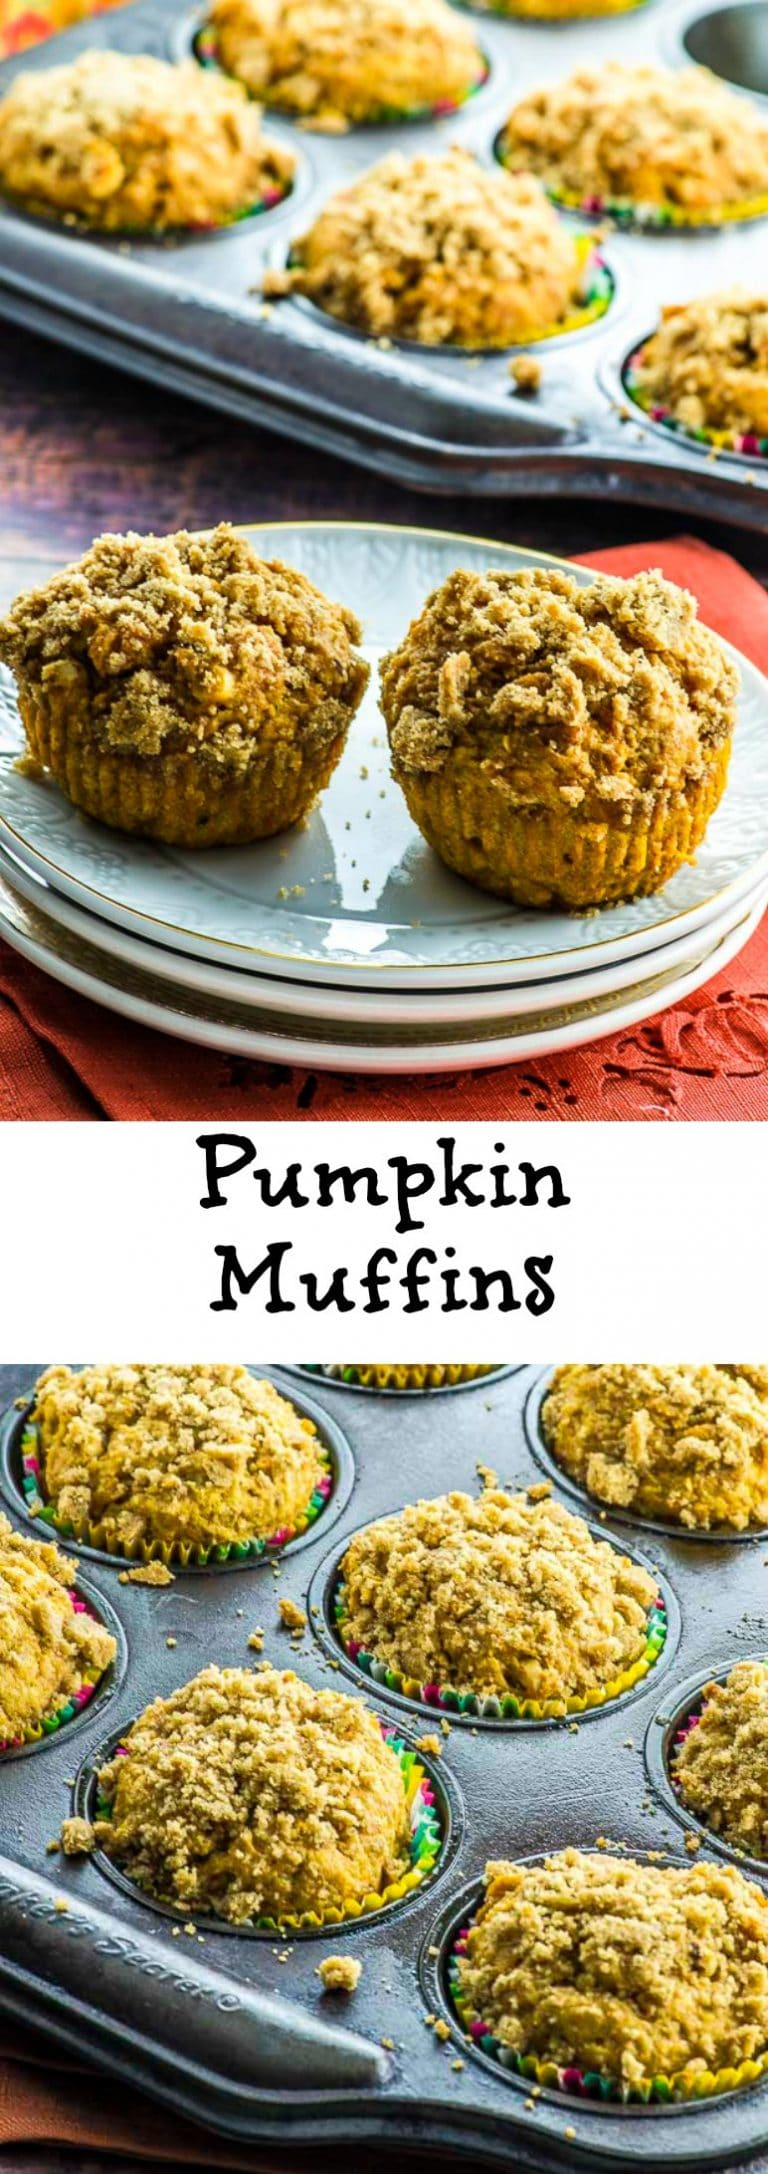 Super moist vegan pumpkin muffins with a crunchy streusel. There are great for breakfast or as a snack with your favorite coffee or hot drink.